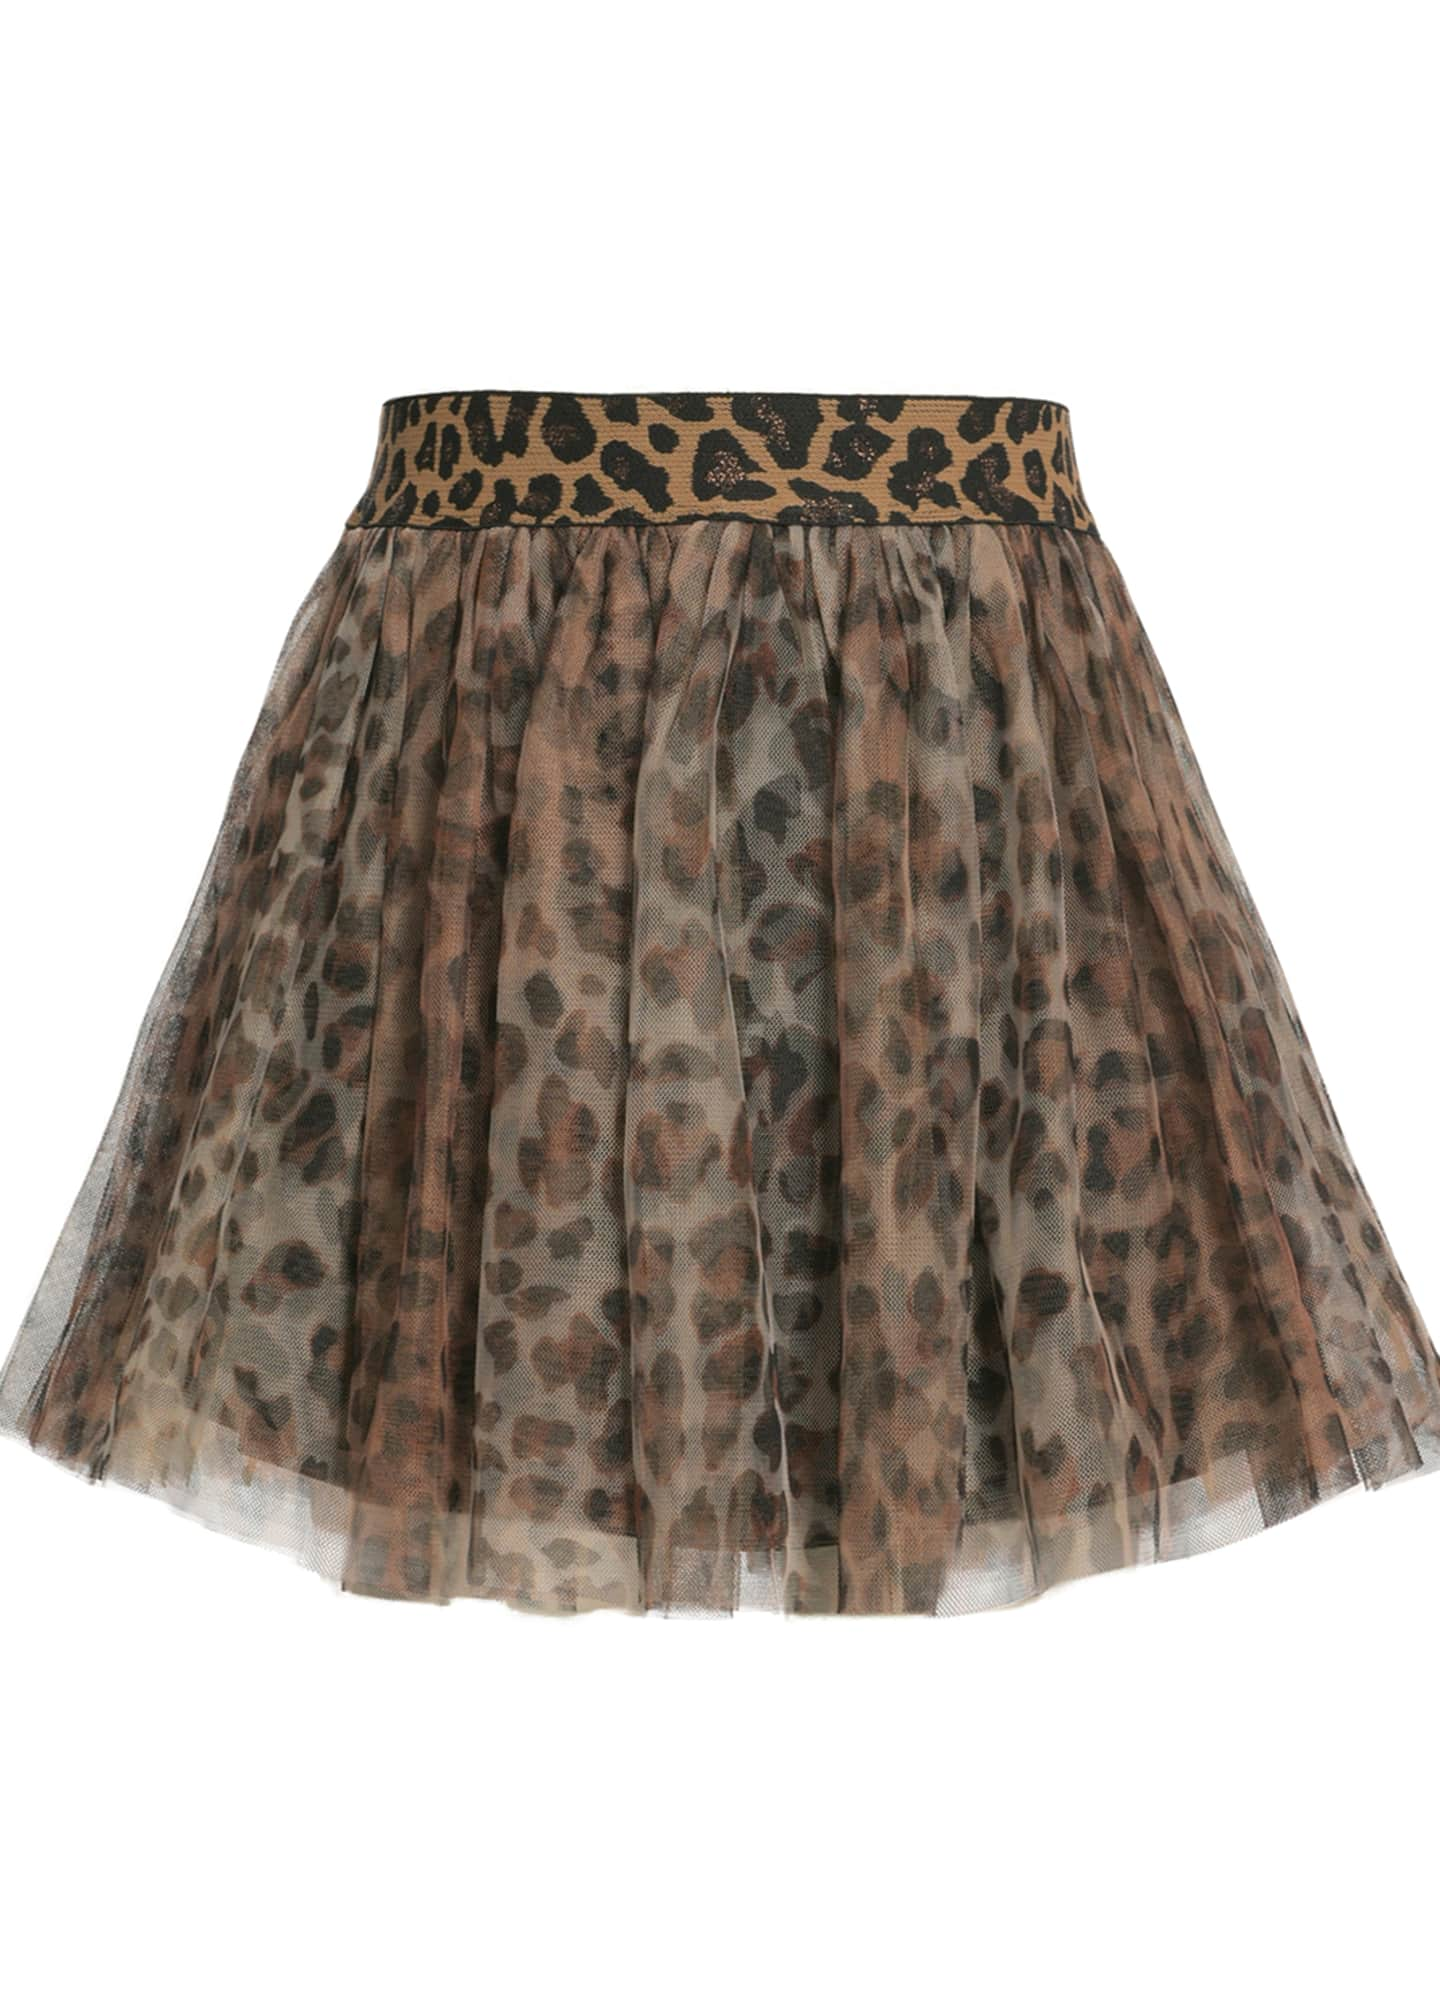 Animal-Print Tutu Skirt, Size 7-14